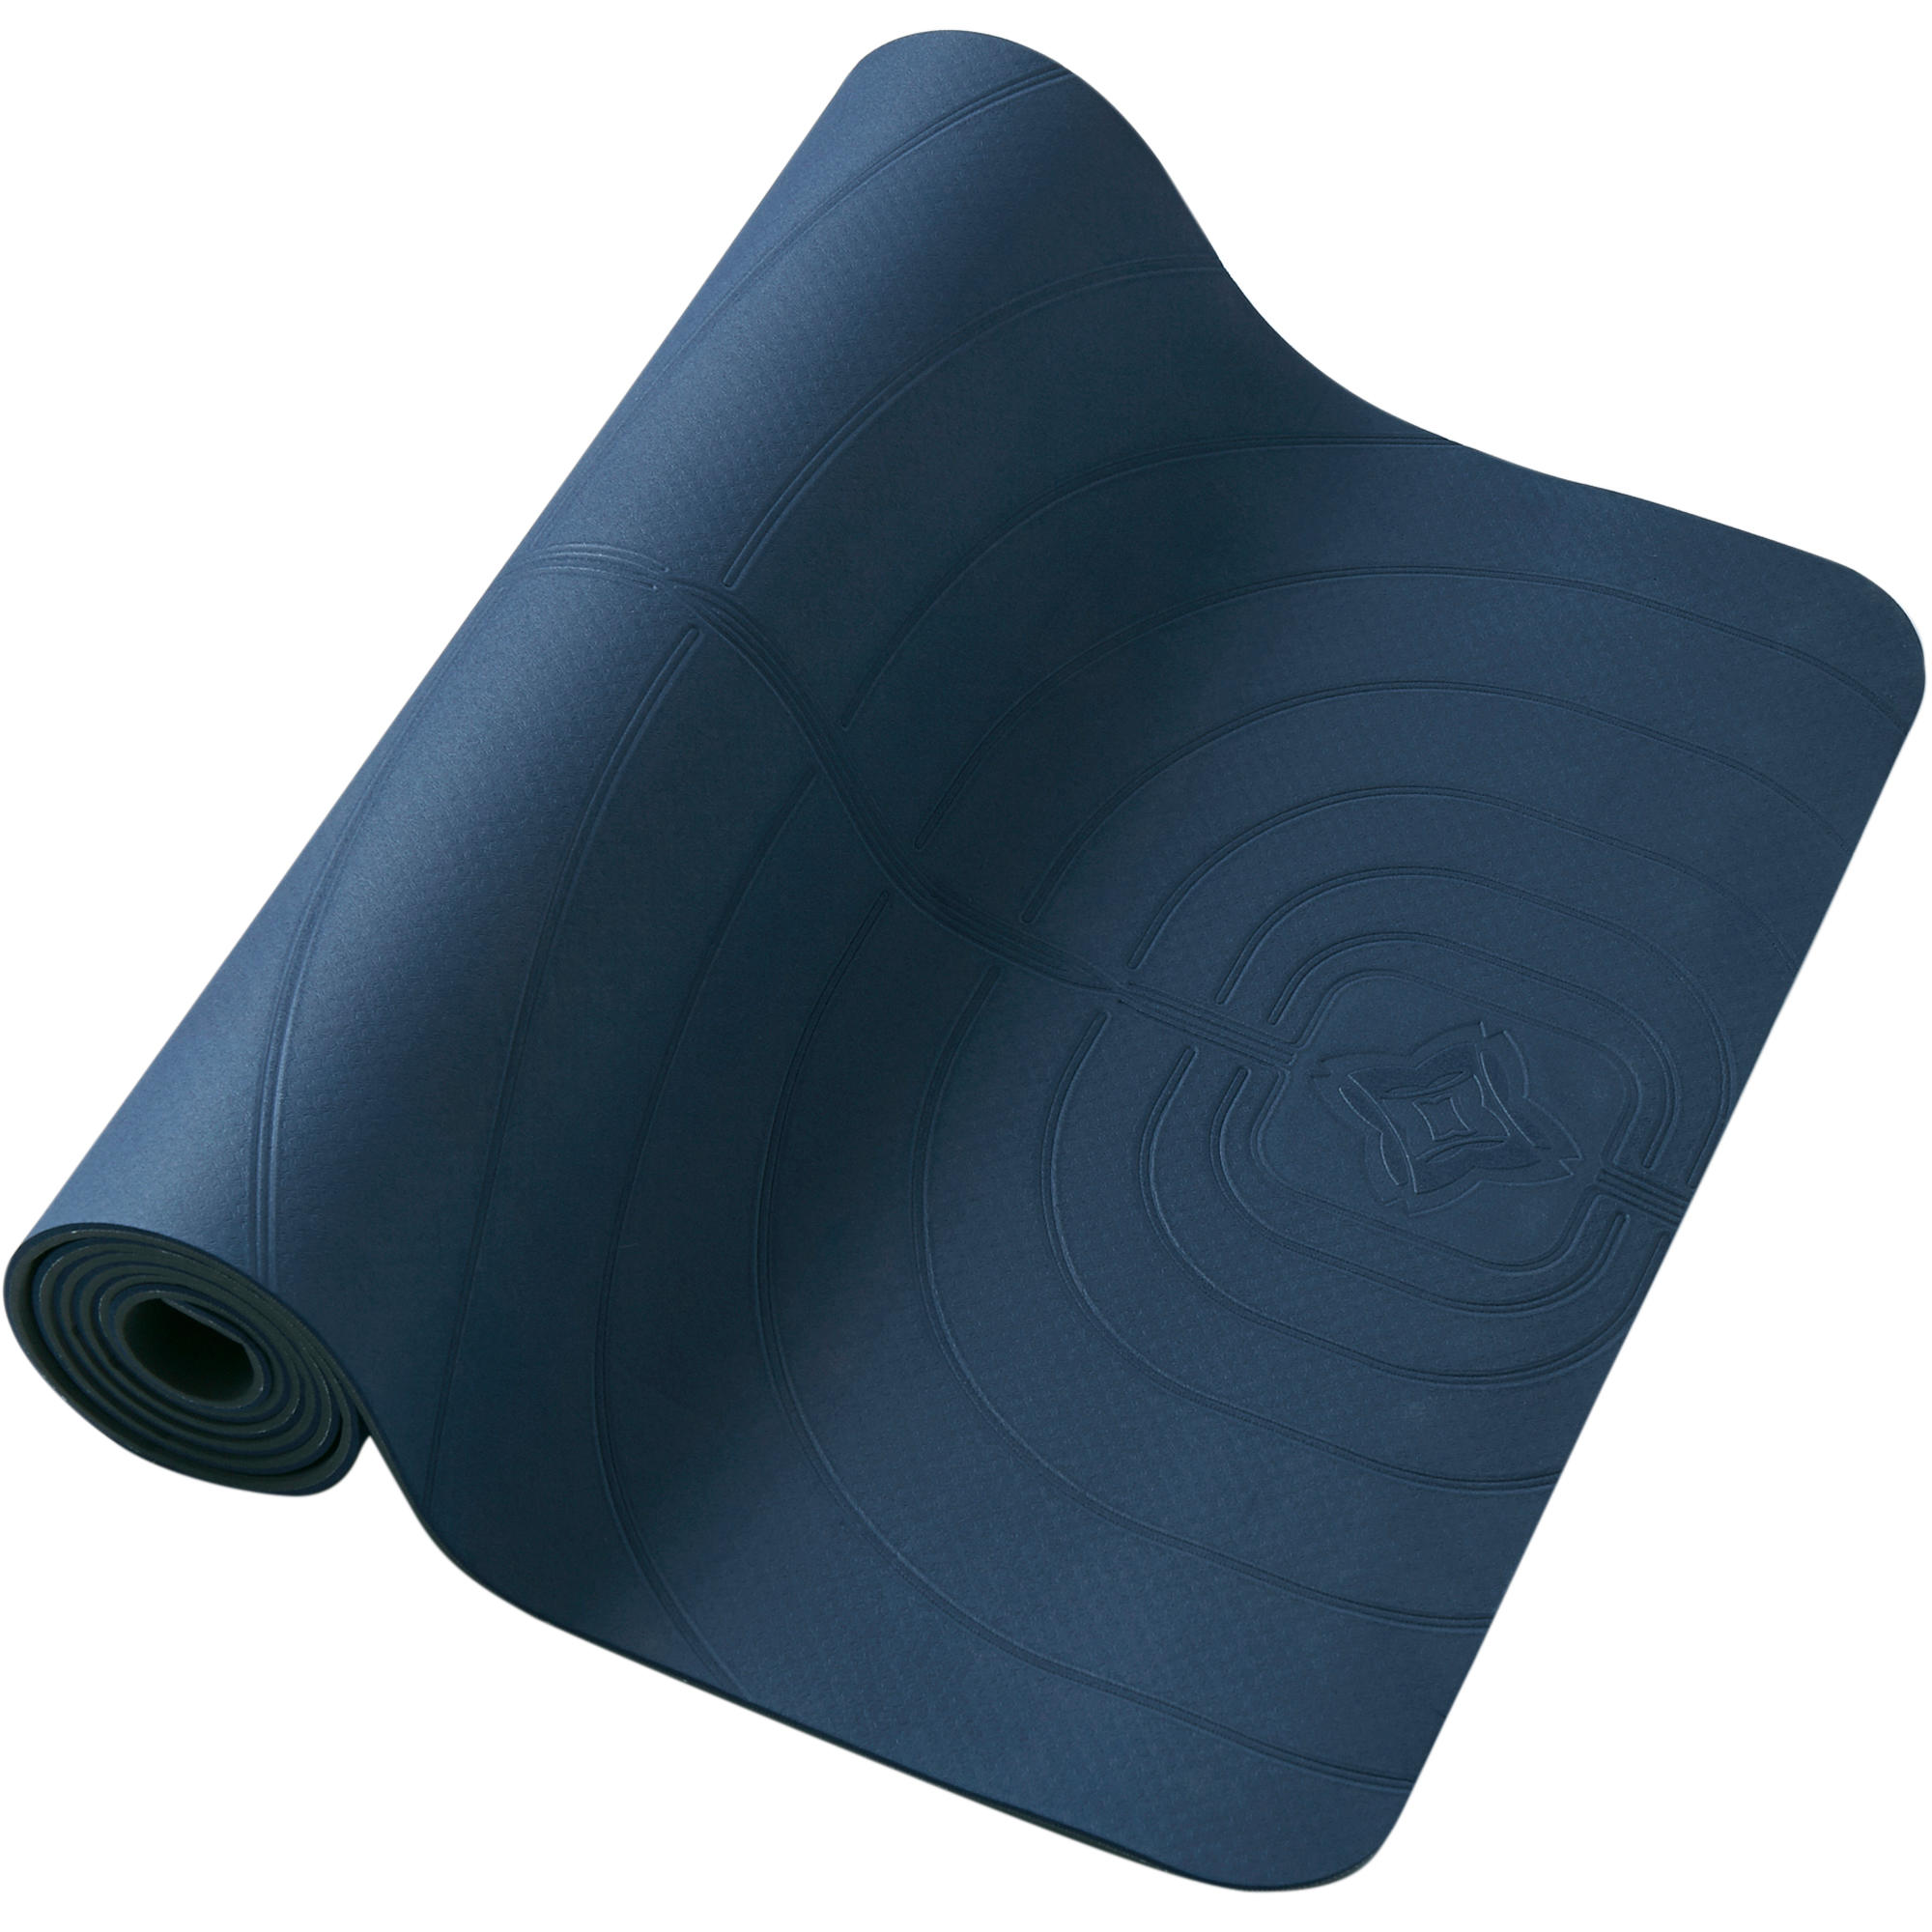 TAPETE DE YOGA SUAVE CLUB 5 mm AZUL